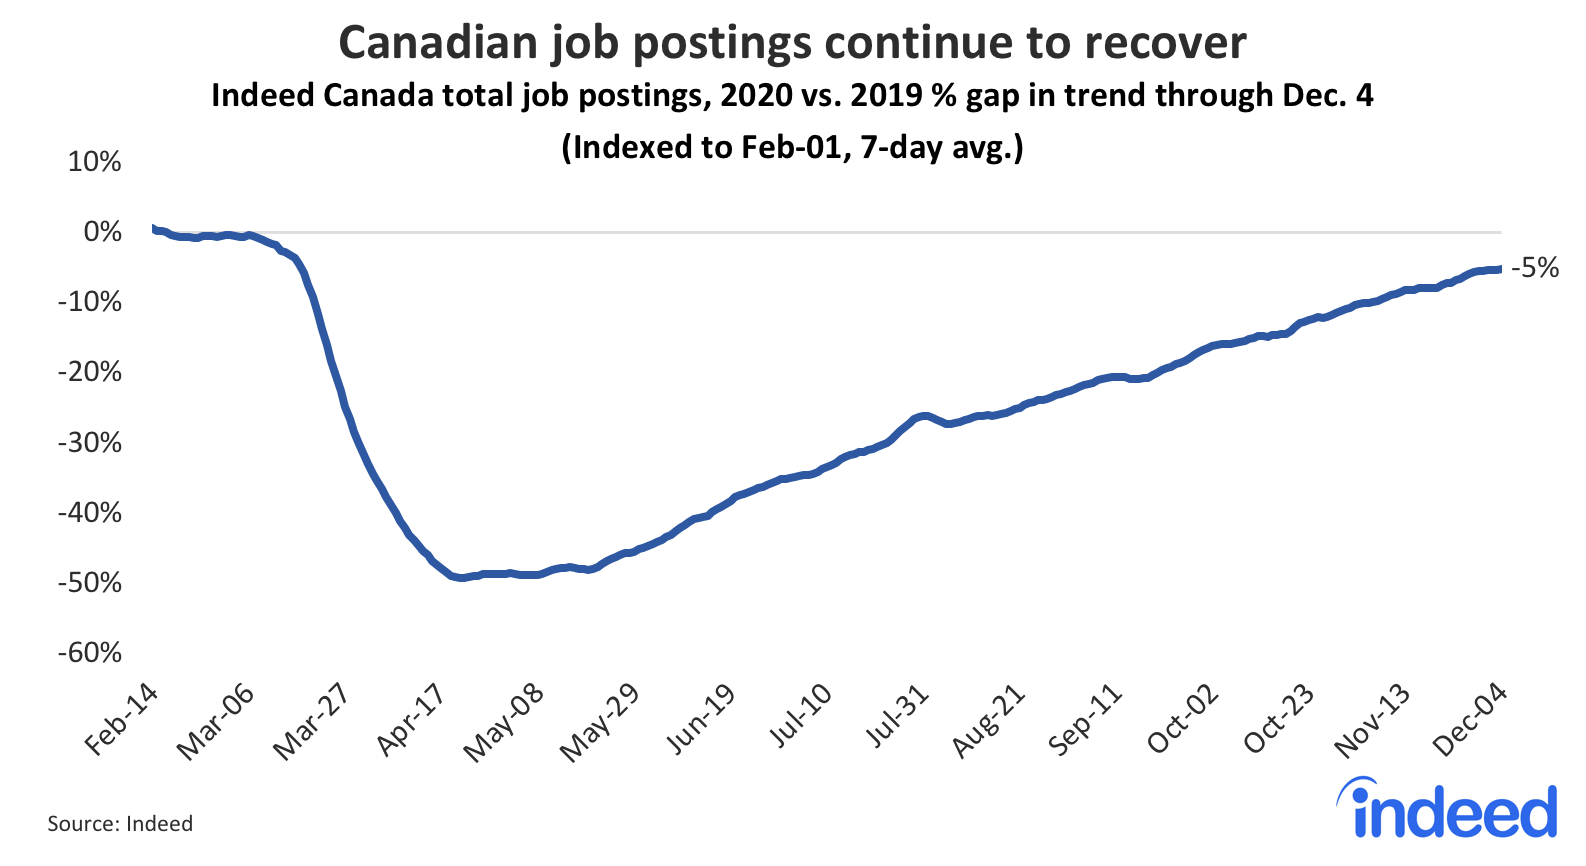 Line graph showing recovery for Canadian job postings continues recovery.